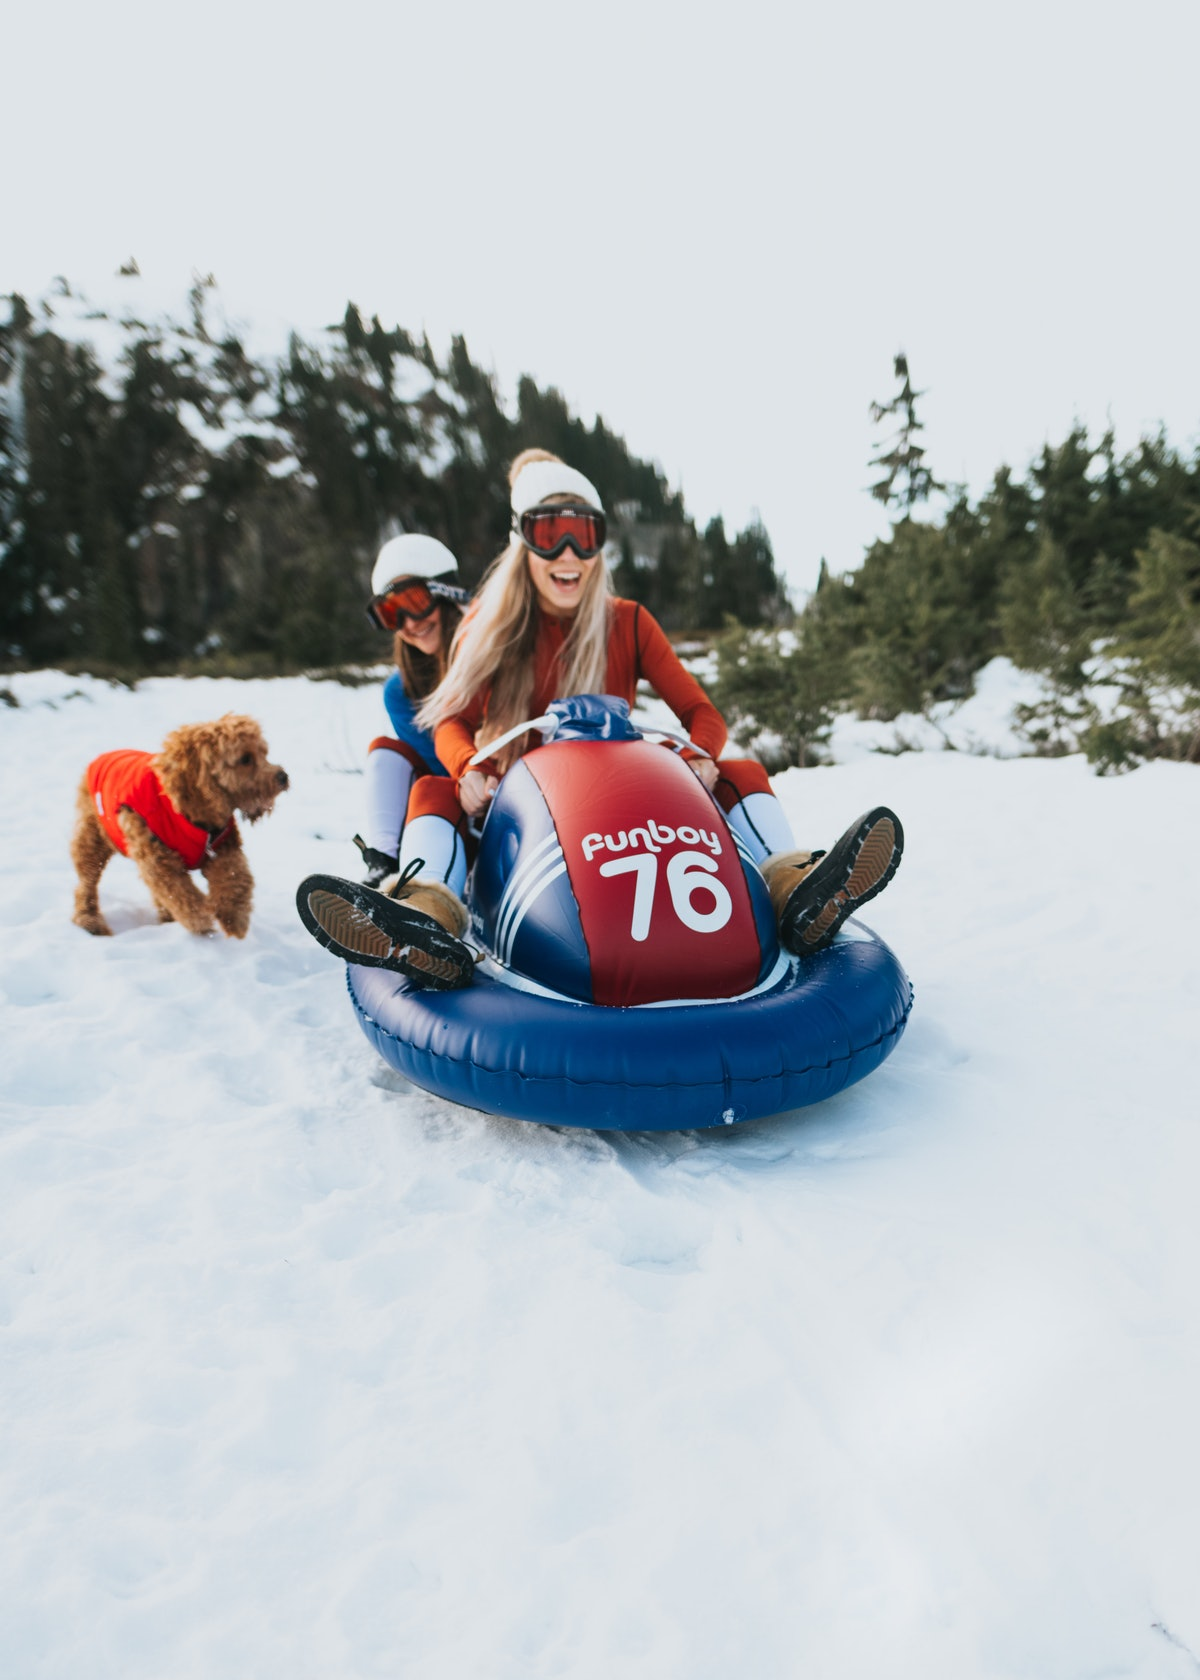 The new FUNBOY Snowmobile Sled for this winter can fit two people and withstand up to 25 below.